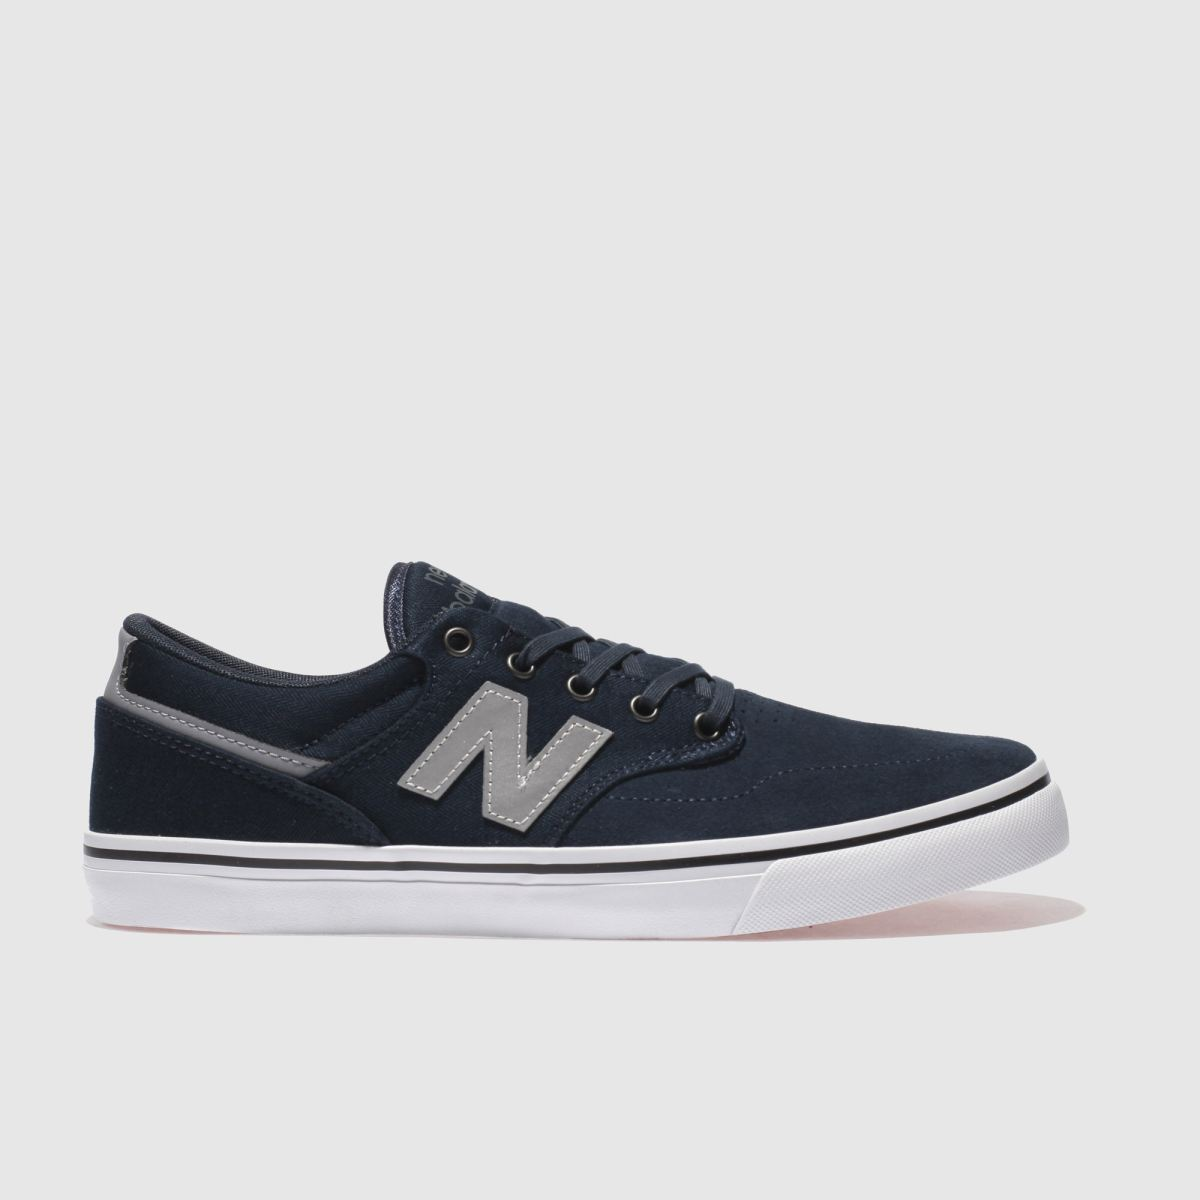 New Balance Navy & White All Coasts 331 Trainers